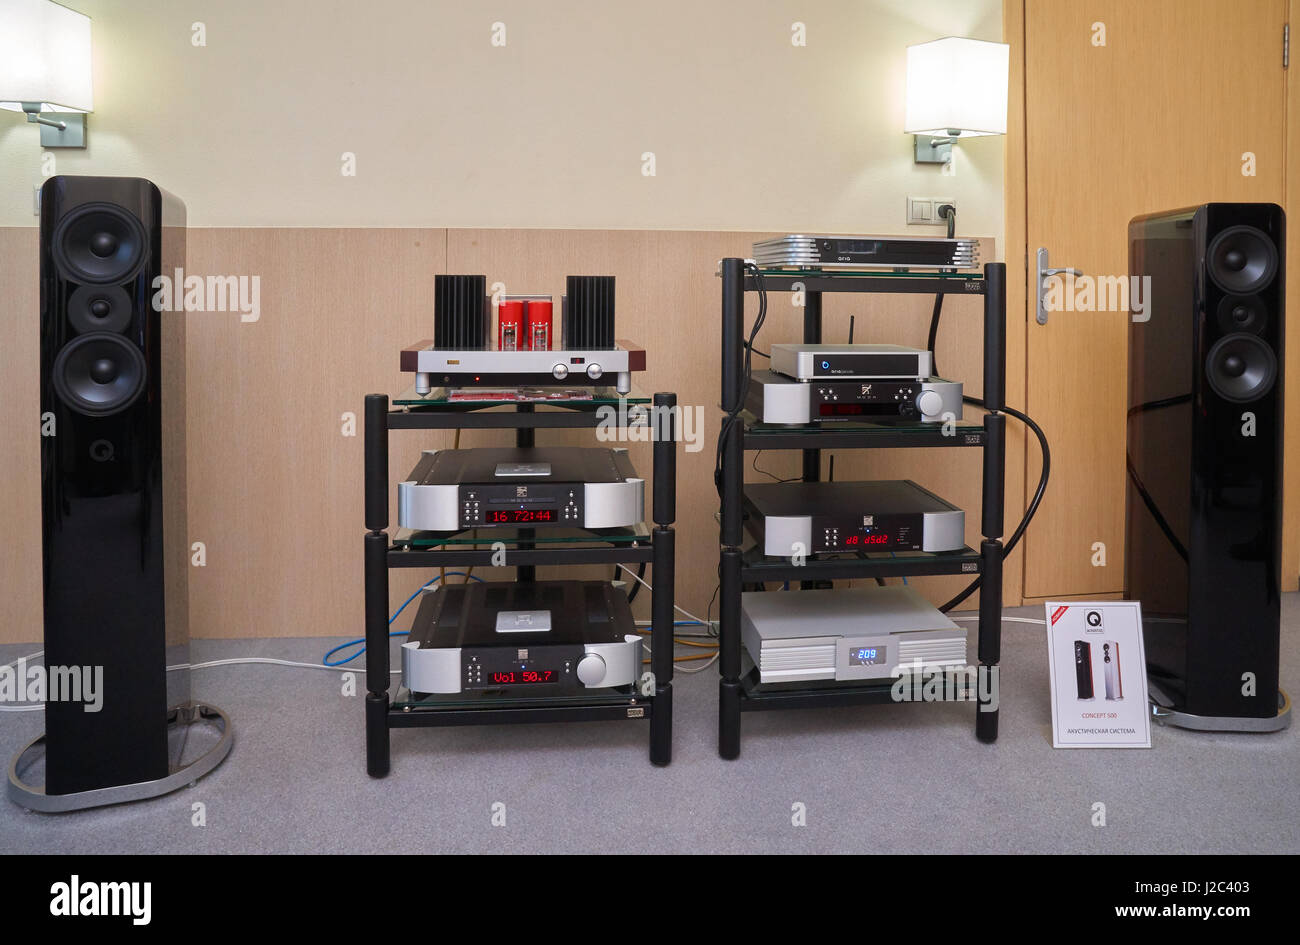 preamplifier stock photos preamplifier stock images alamy. Black Bedroom Furniture Sets. Home Design Ideas